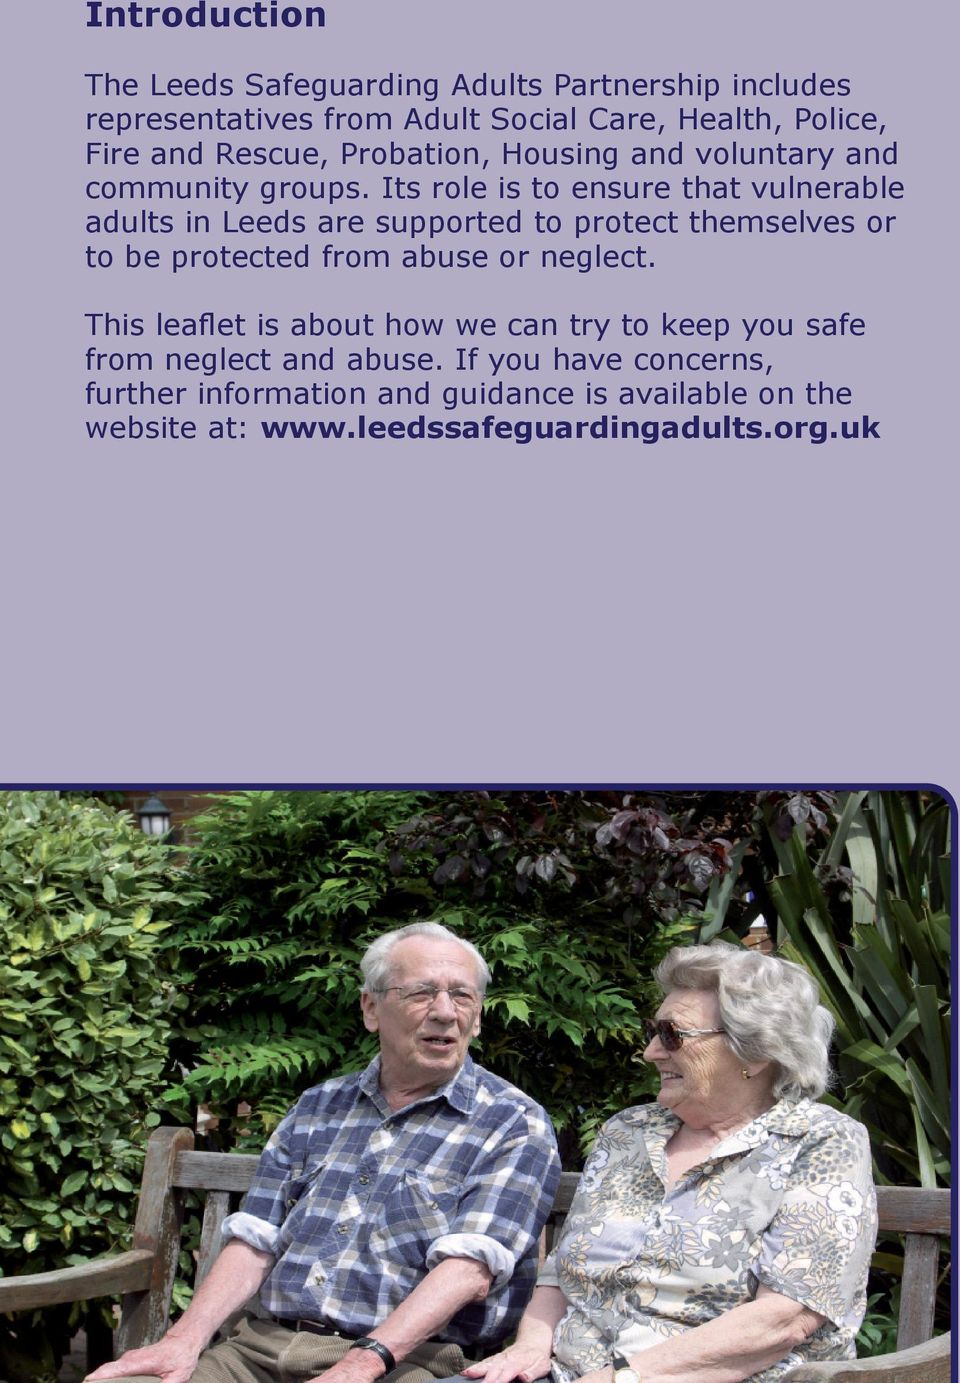 Its role is to ensure that vulnerable adults in Leeds are supported to protect themselves or to be protected from abuse or neglect.